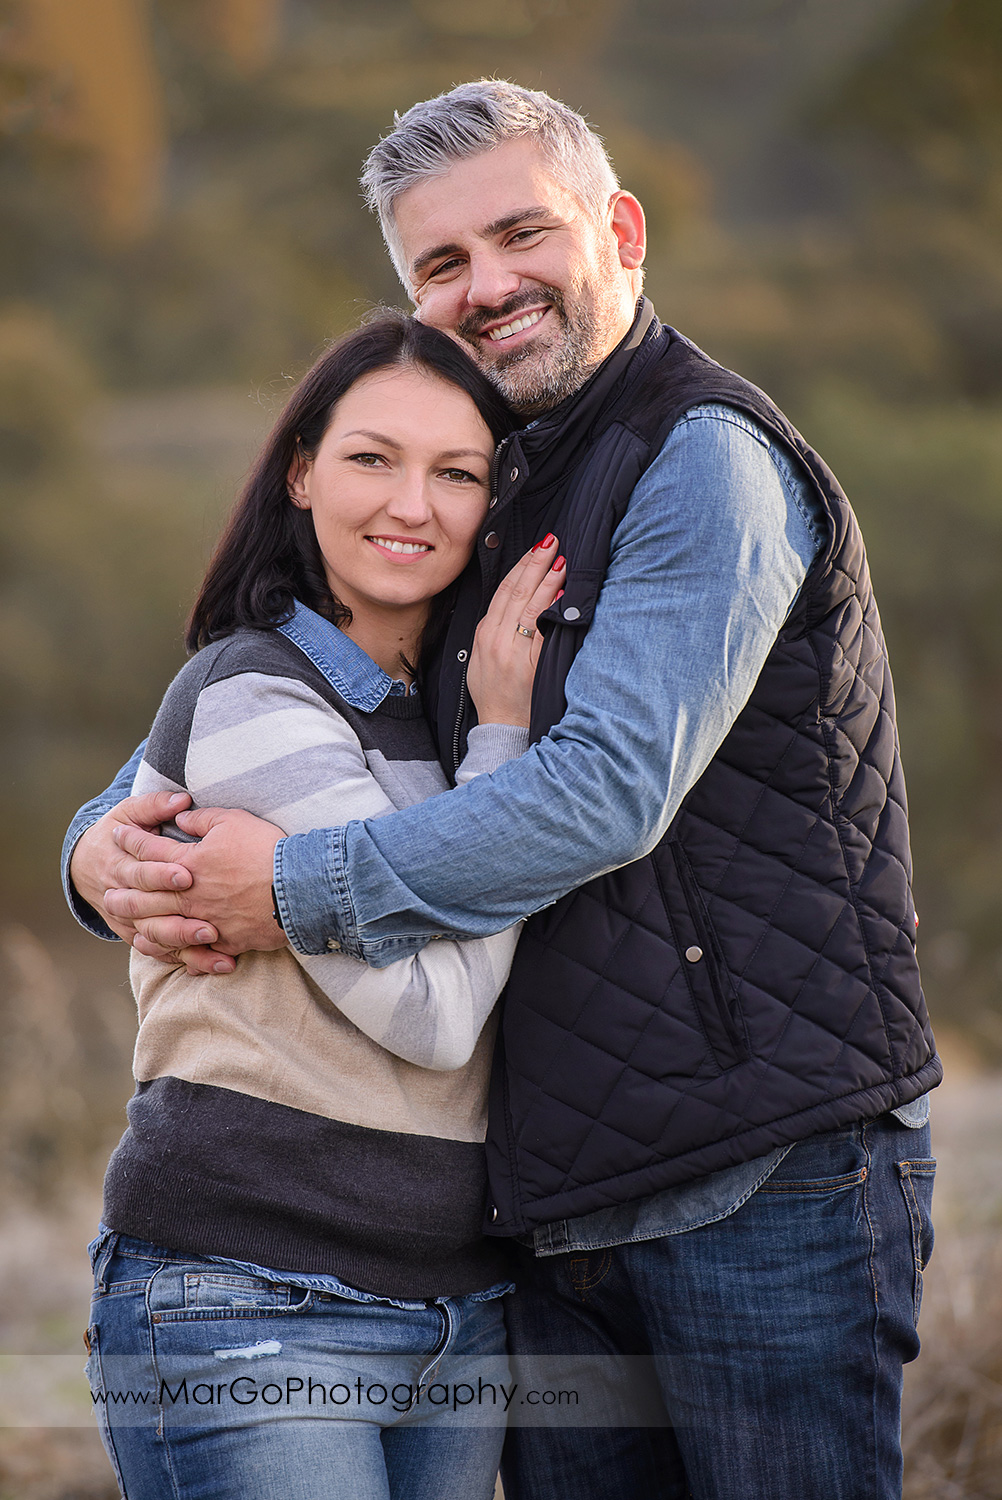 3/4 vertical portrait of man and woman wearing blue and grey clothes looking into camera during family session at Diablo Foothills Regional Park in Walnut Creek